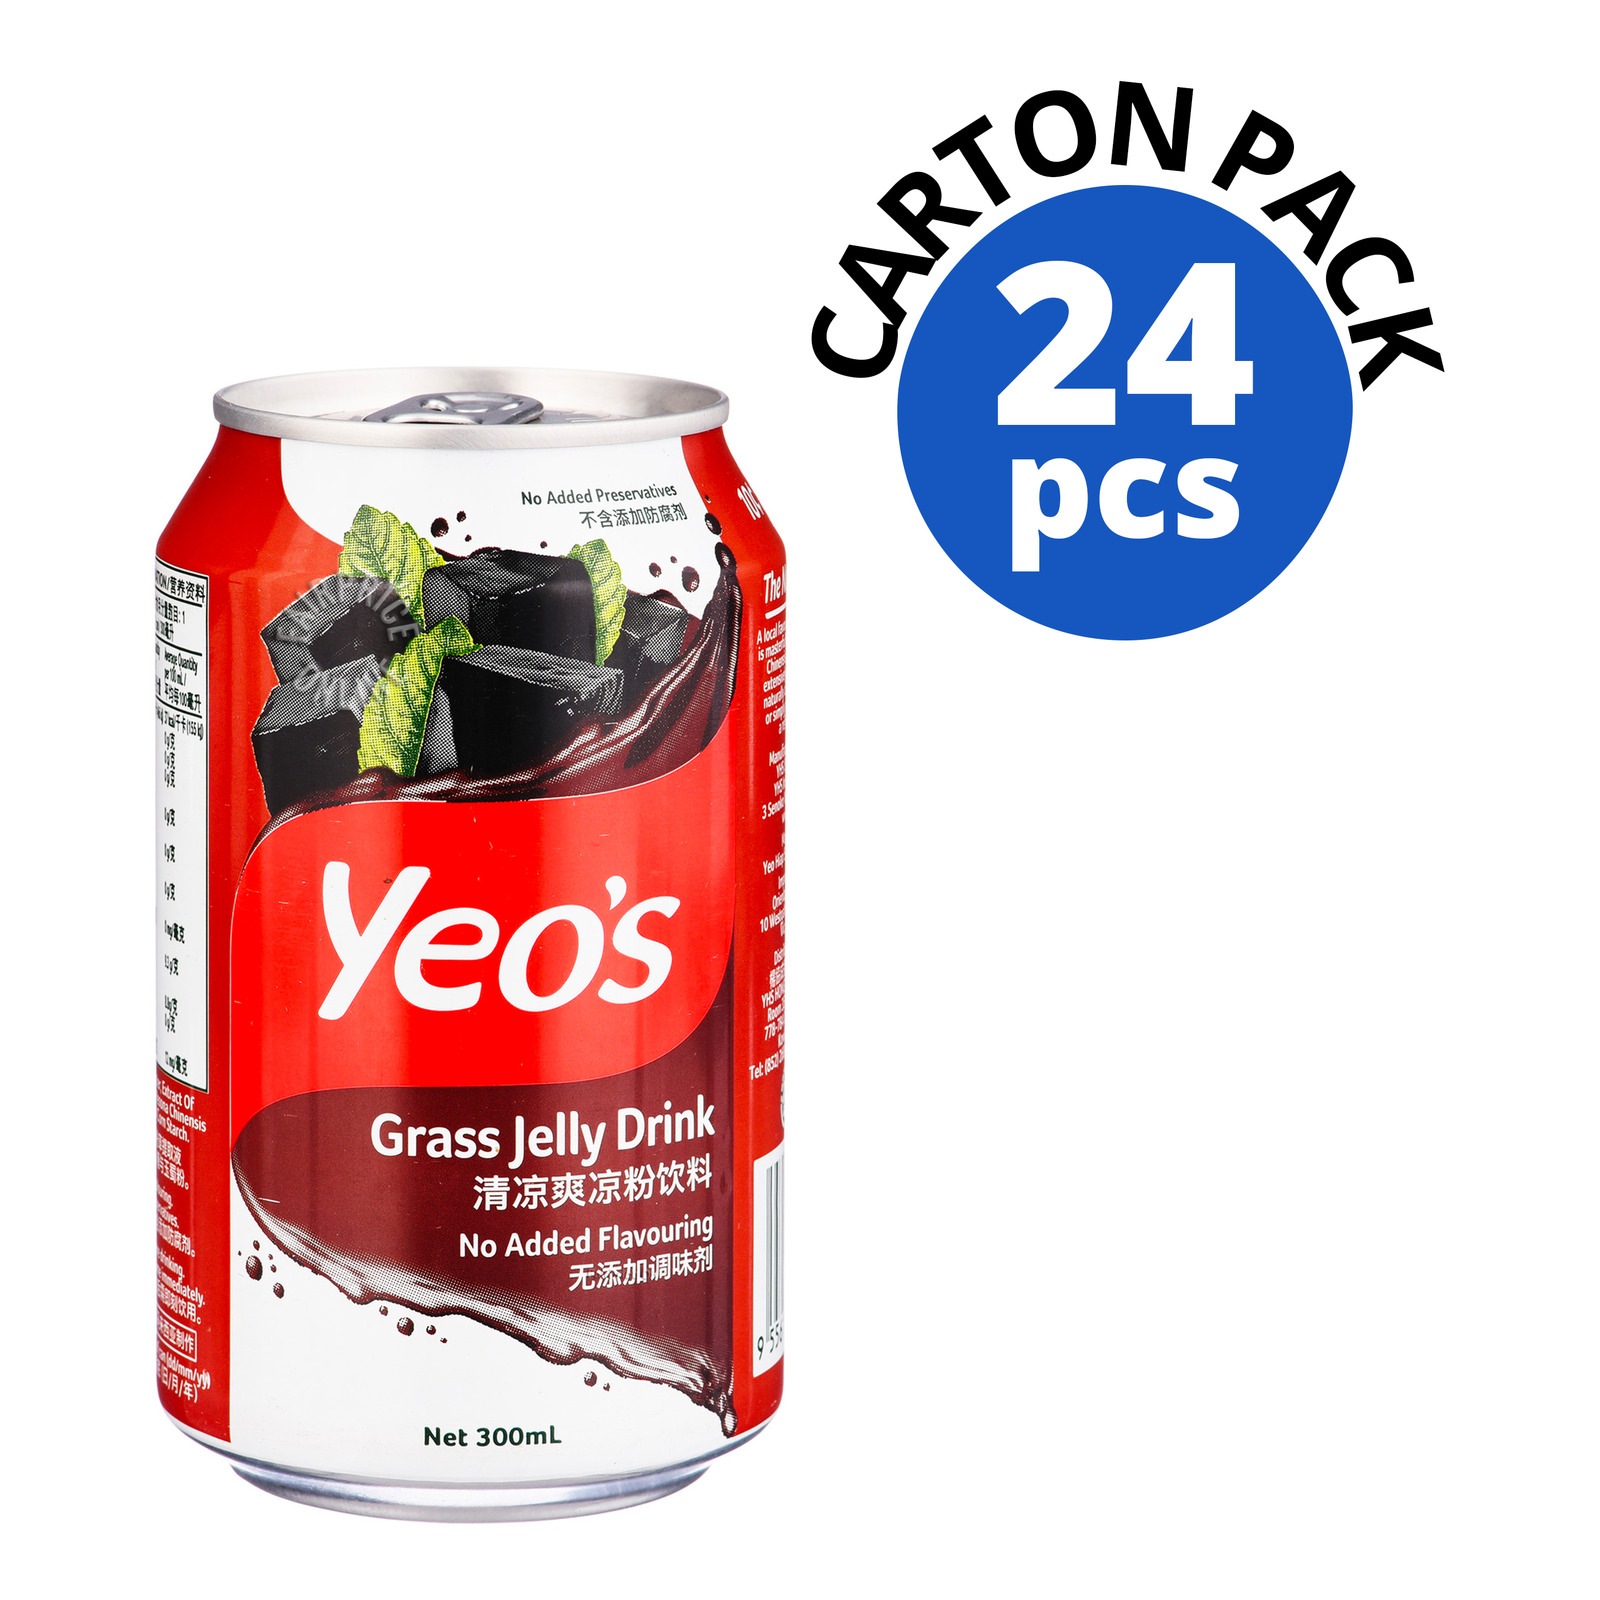 Yeo's Grass Jelly Drink - Case